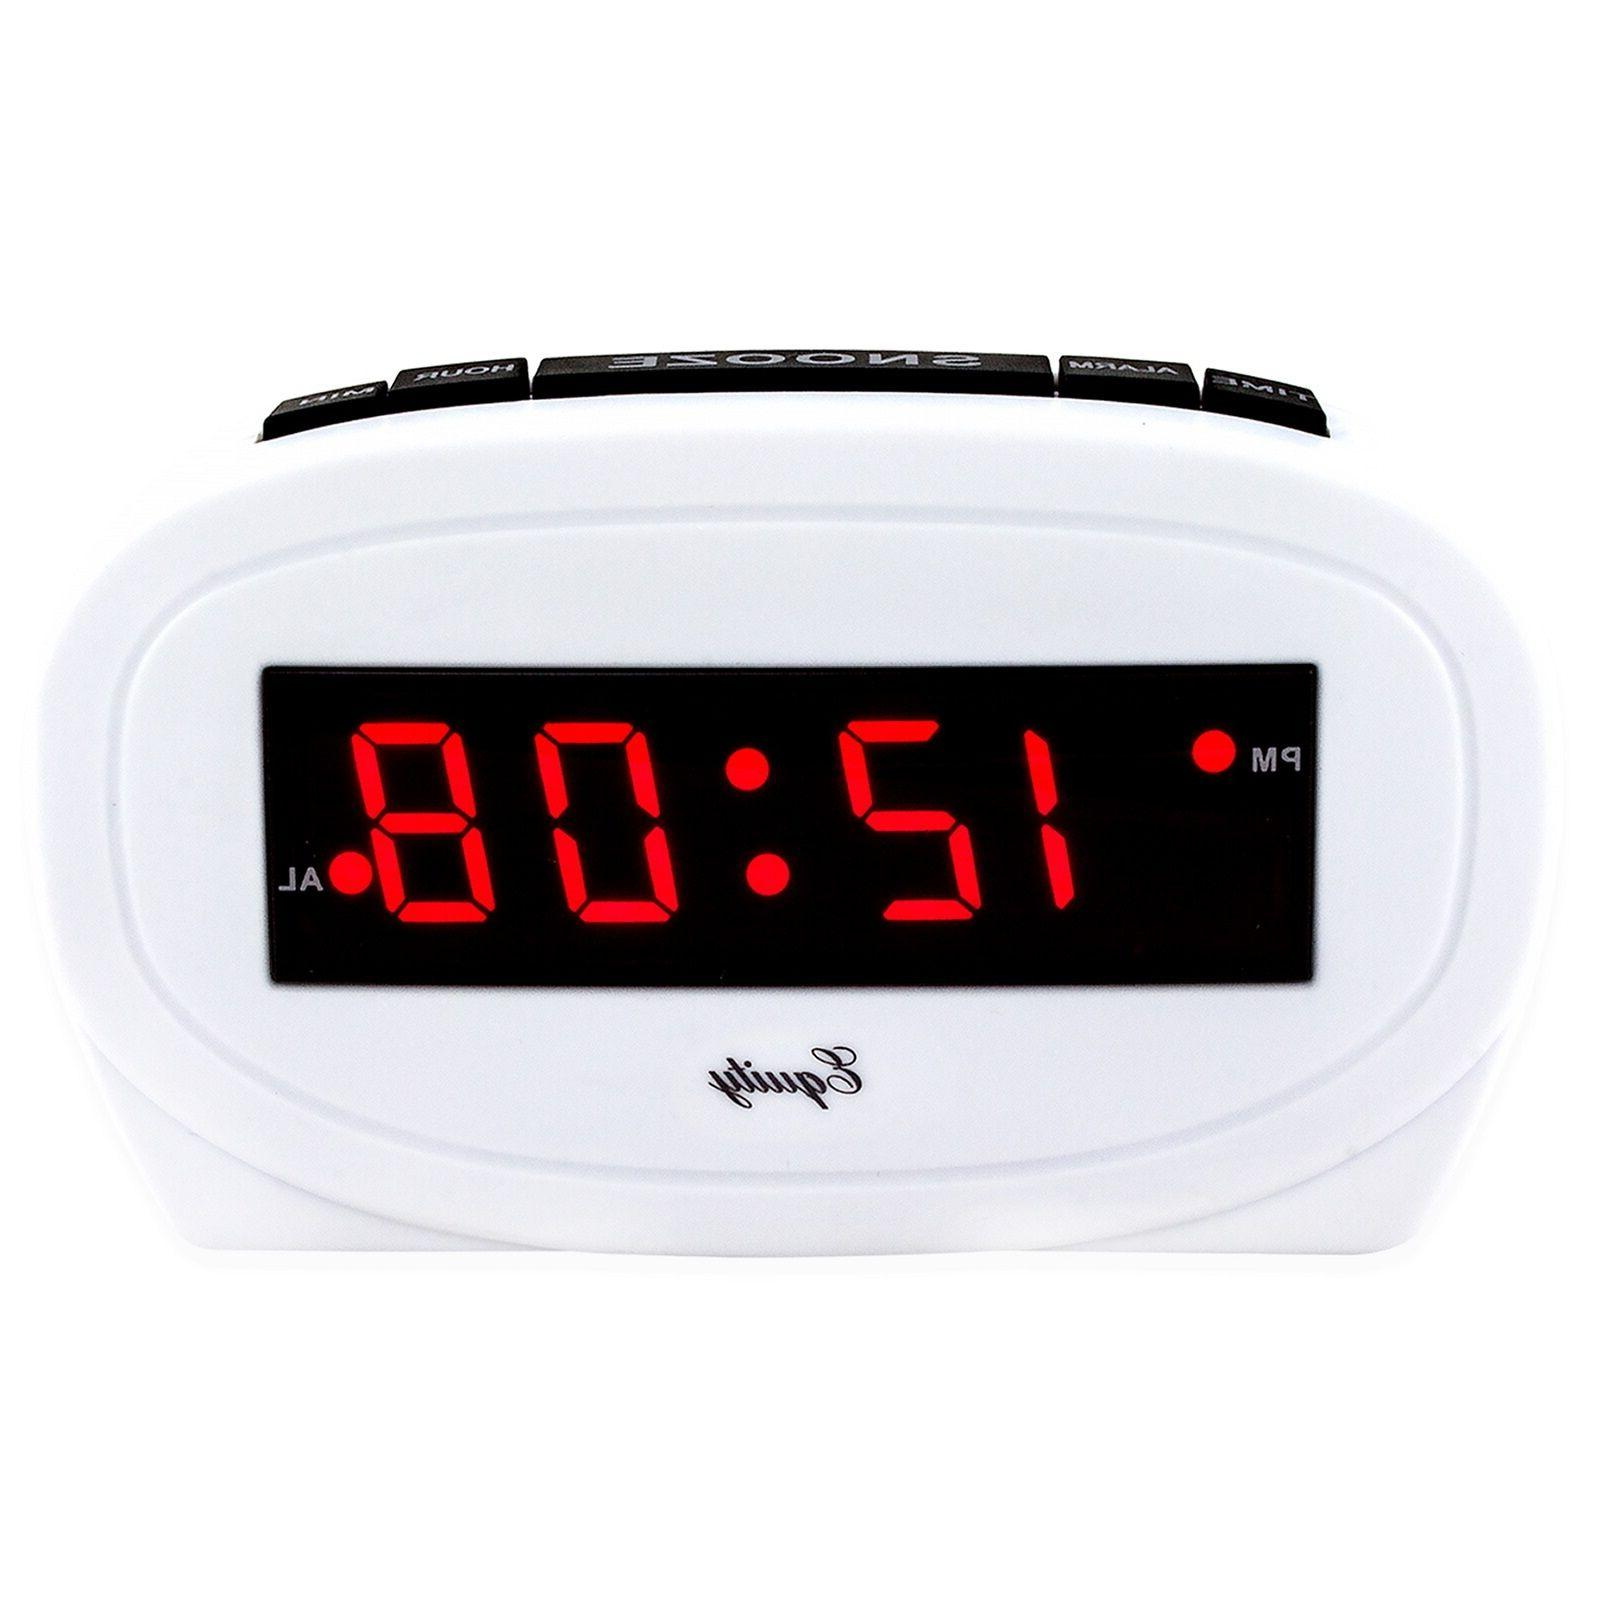 30227 electric red display alarm